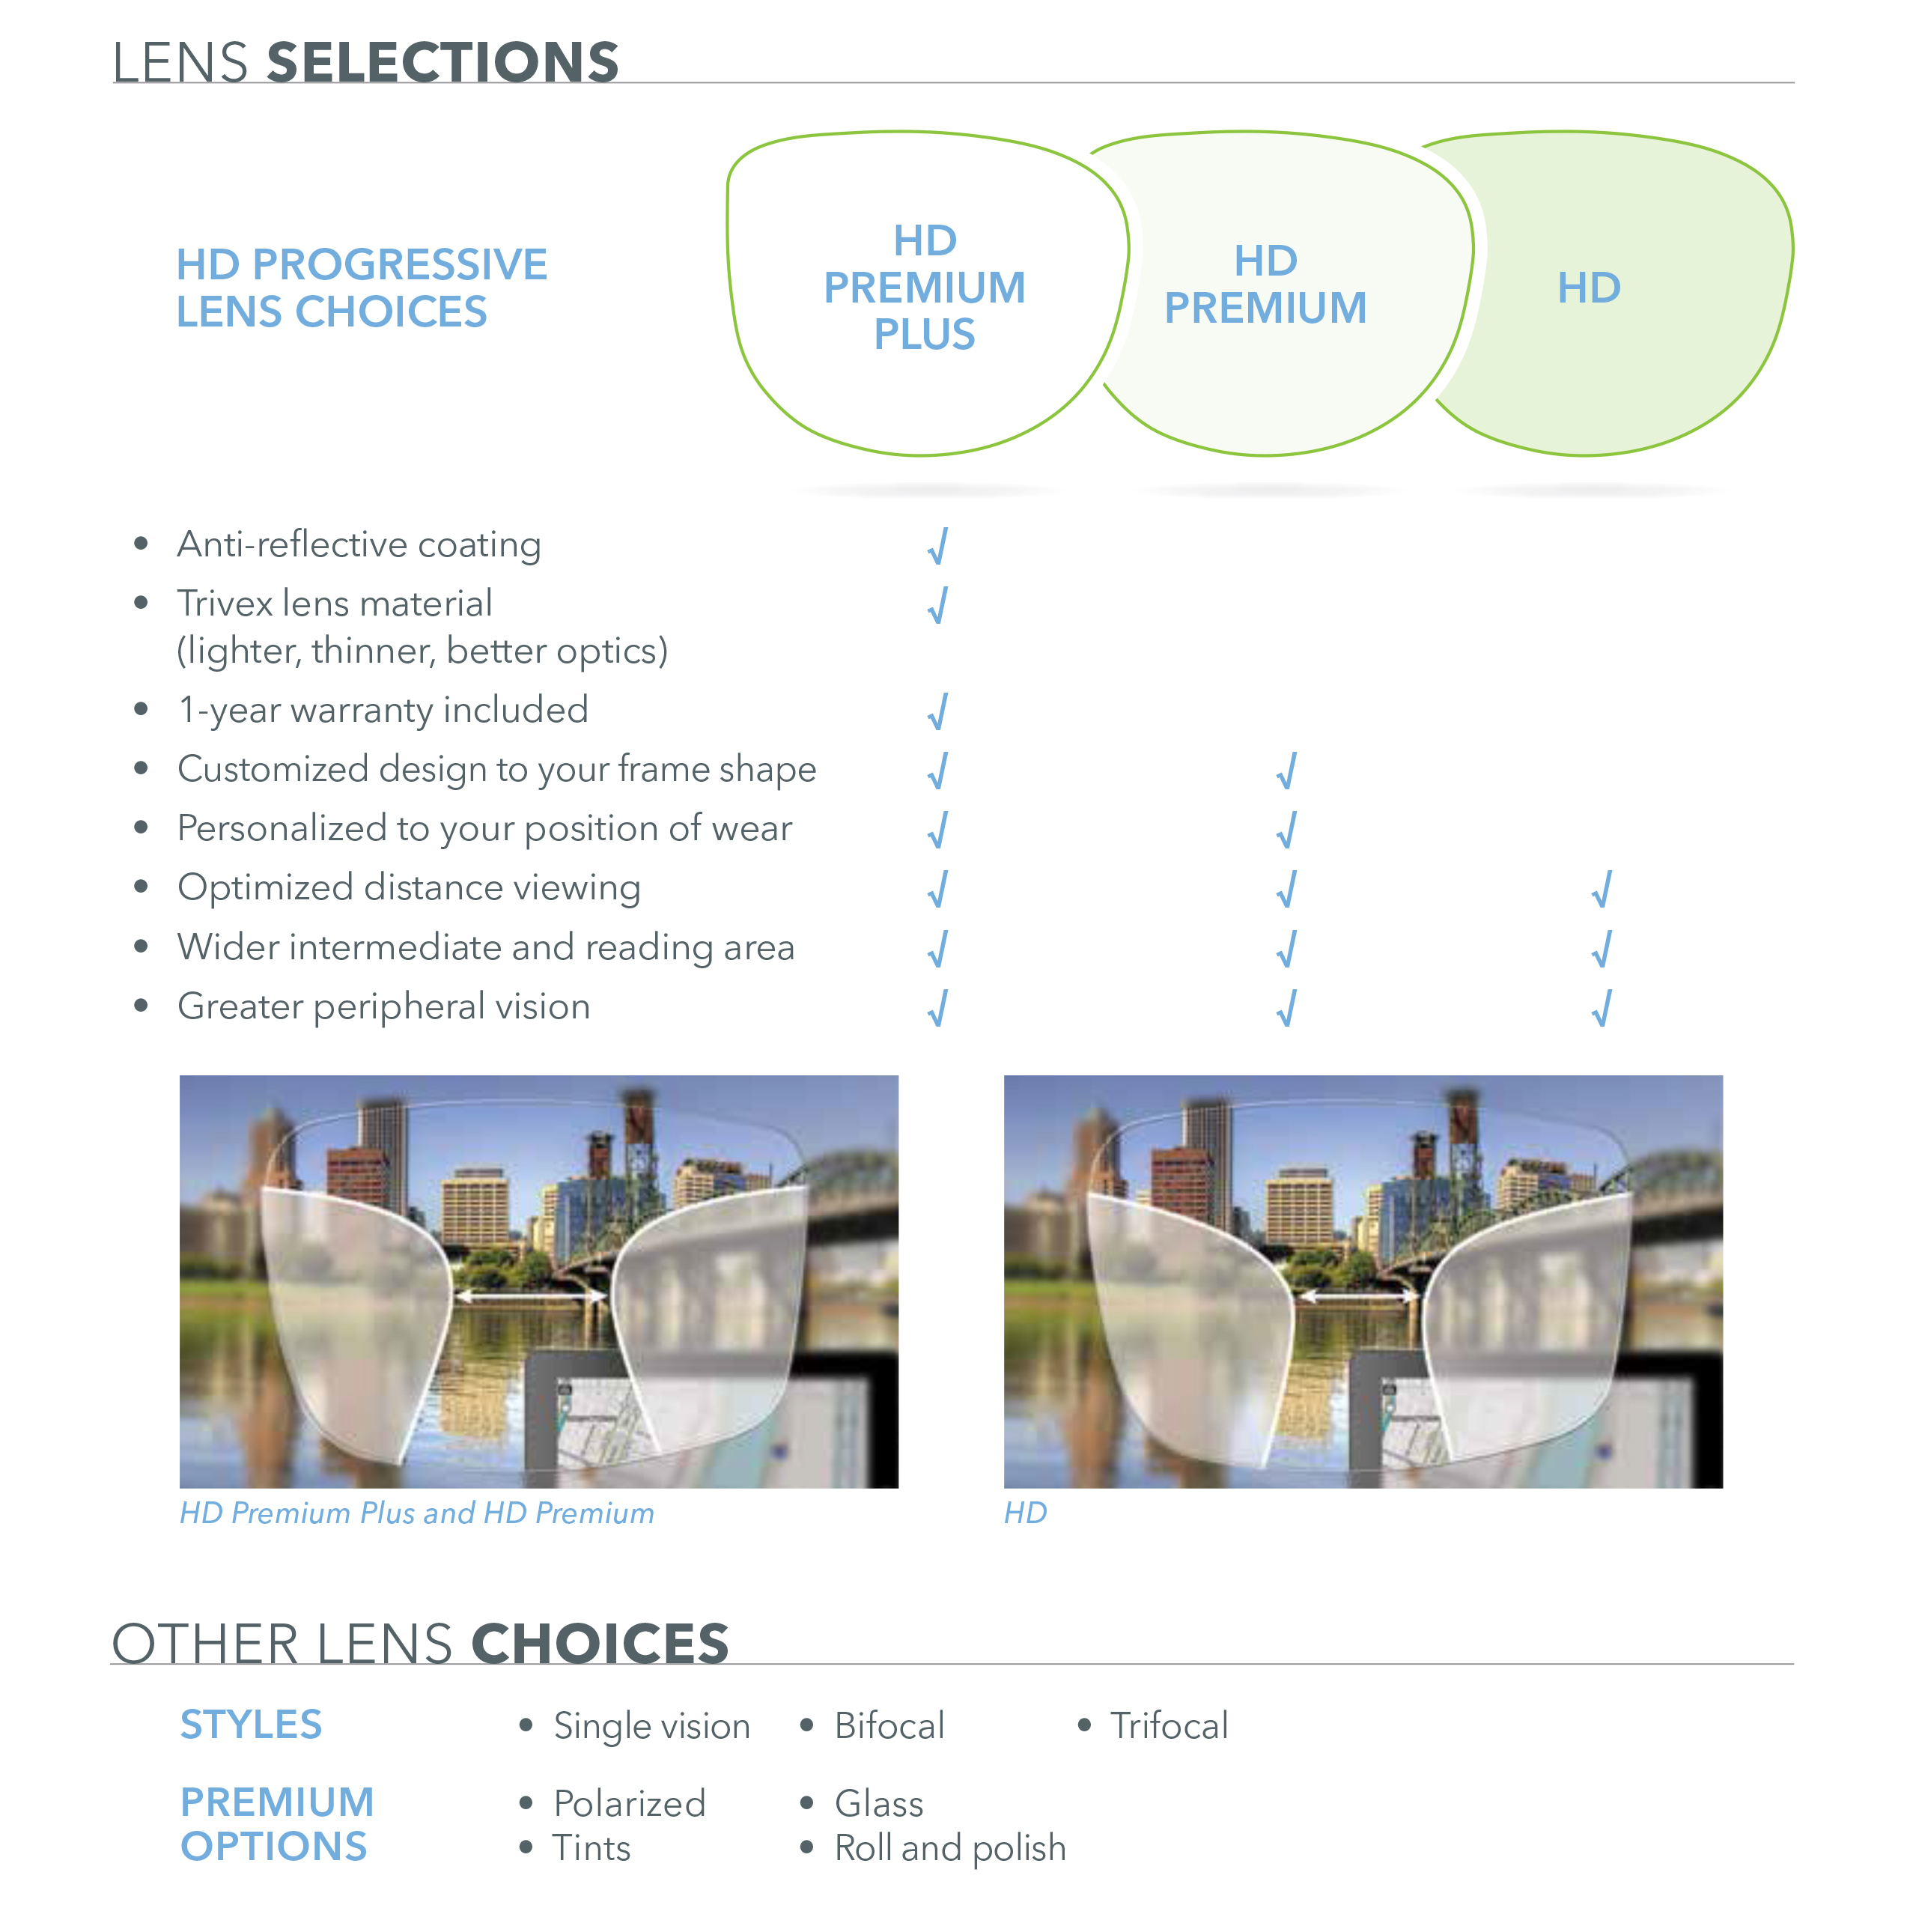 lens selection image